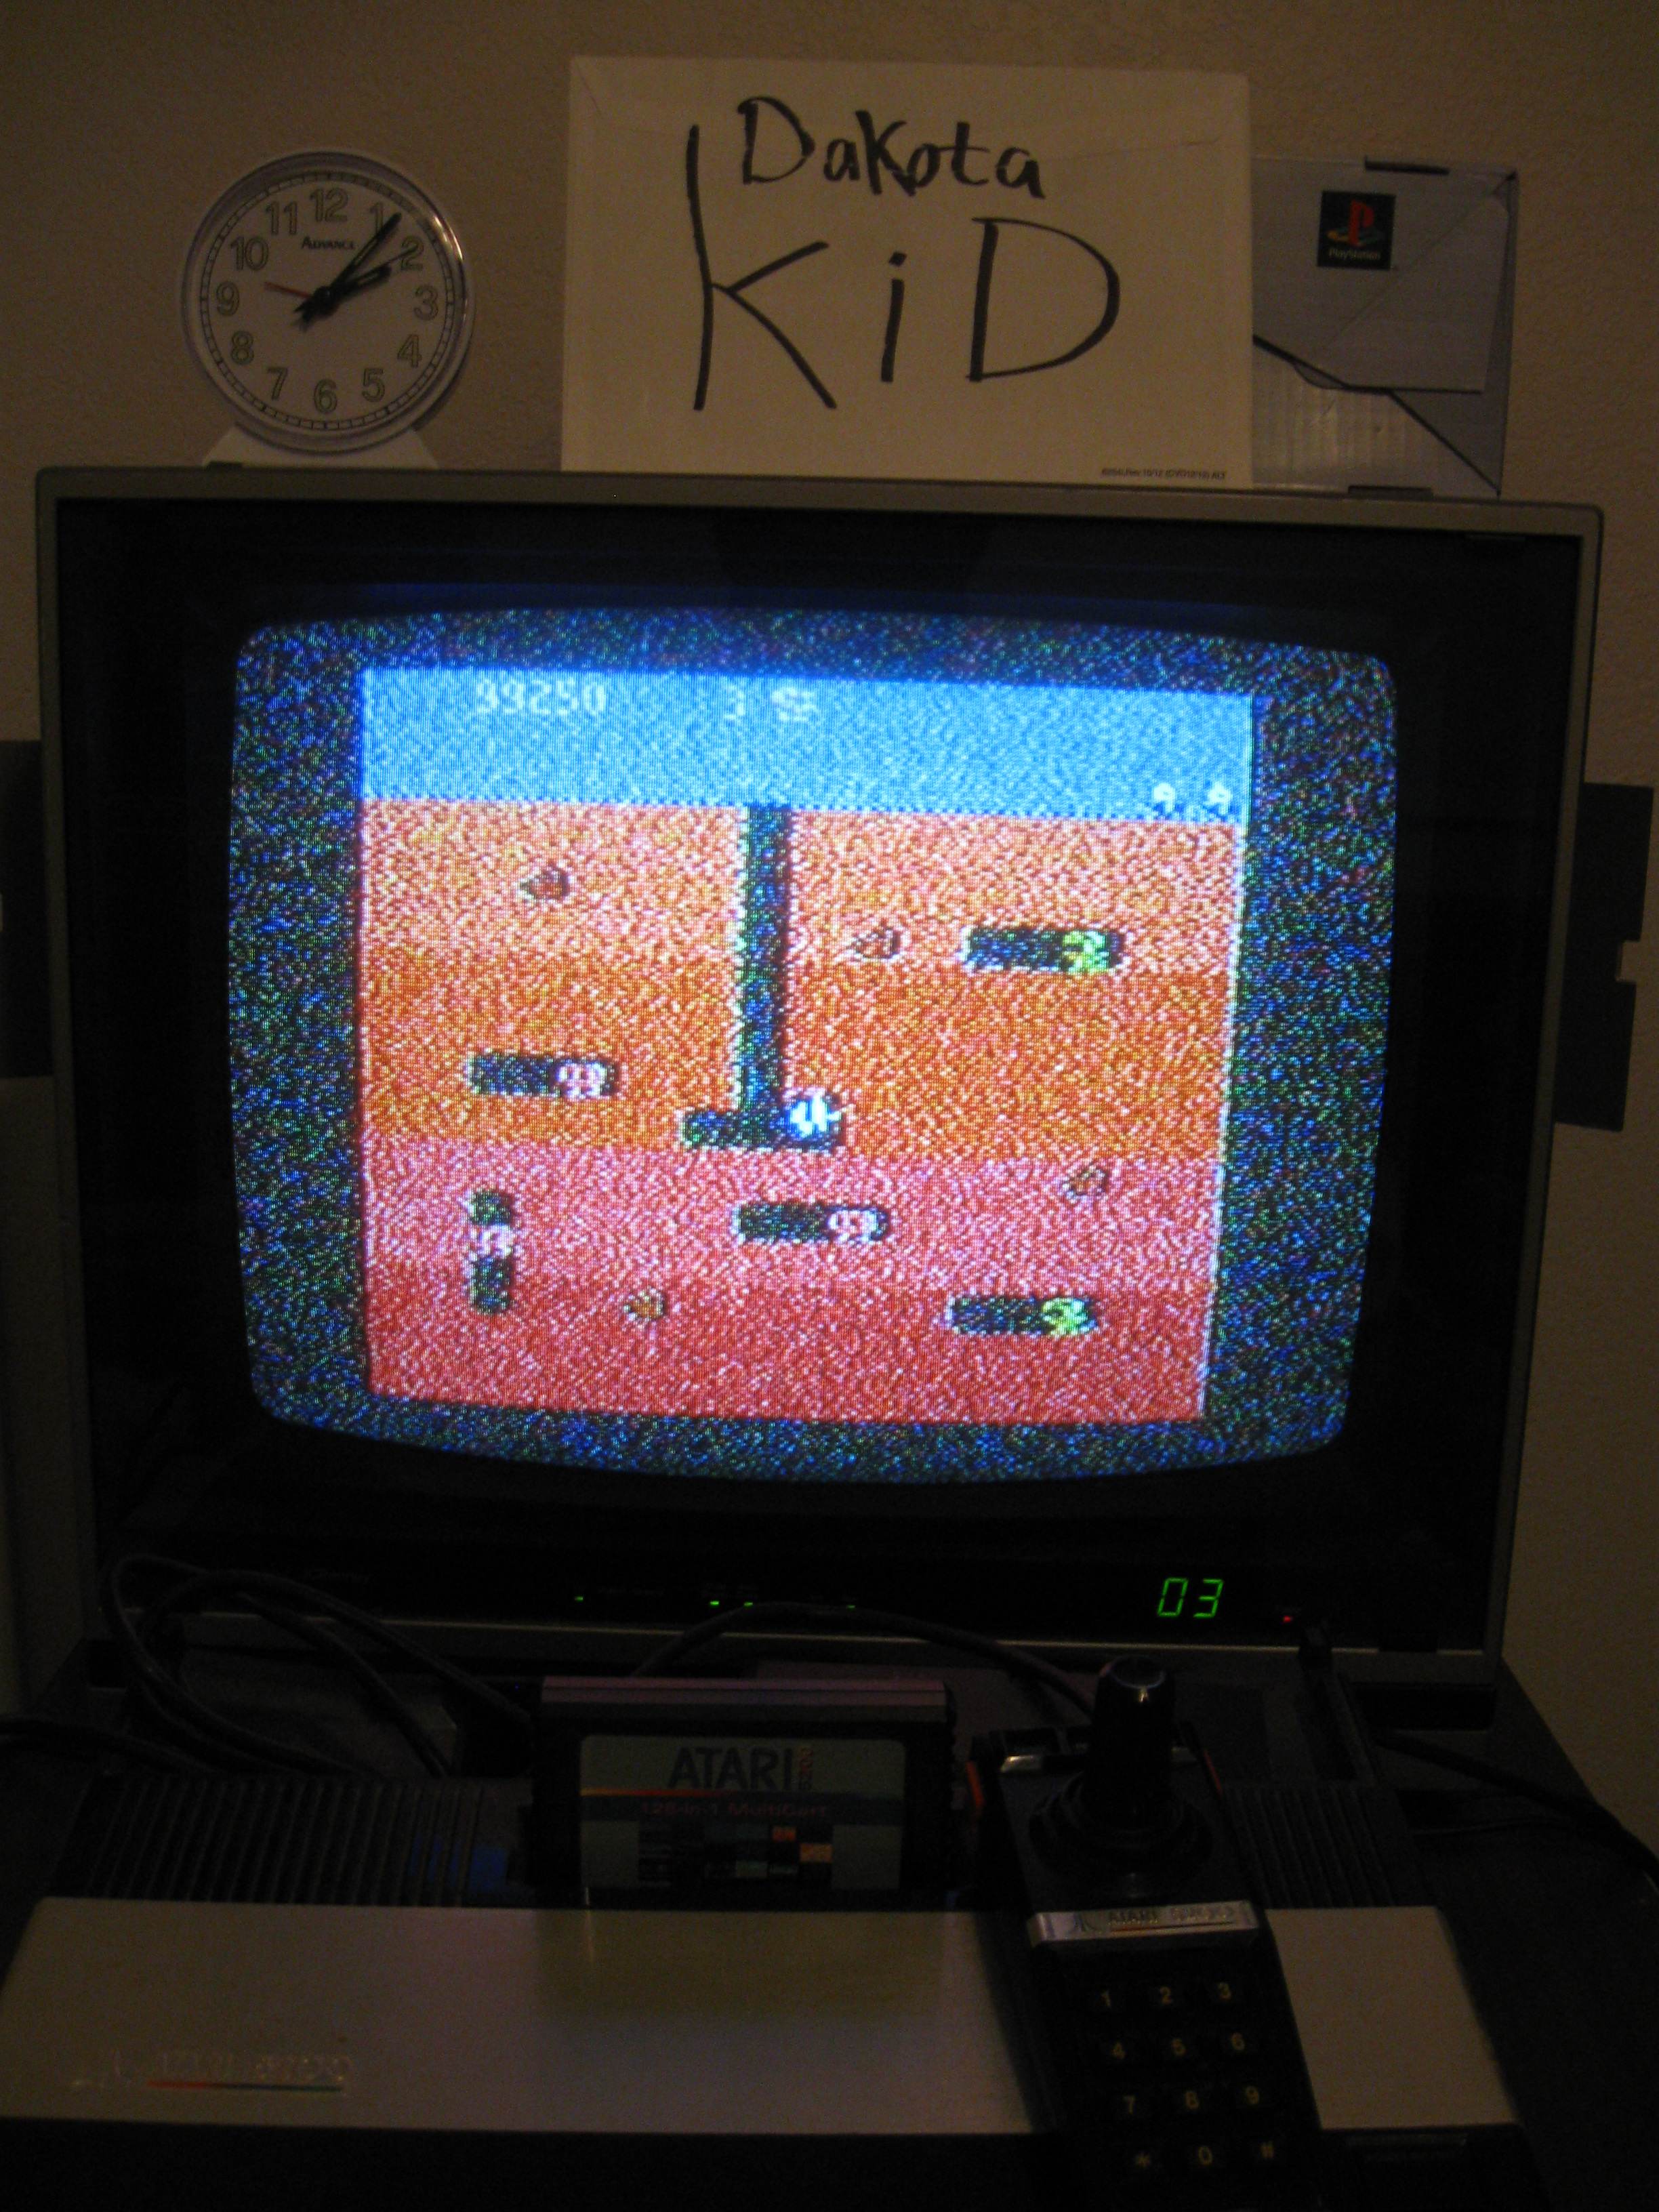 DakotaKid: Dig Dug: Carrot Start (Atari 5200) 99,250 points on 2016-04-13 19:22:43